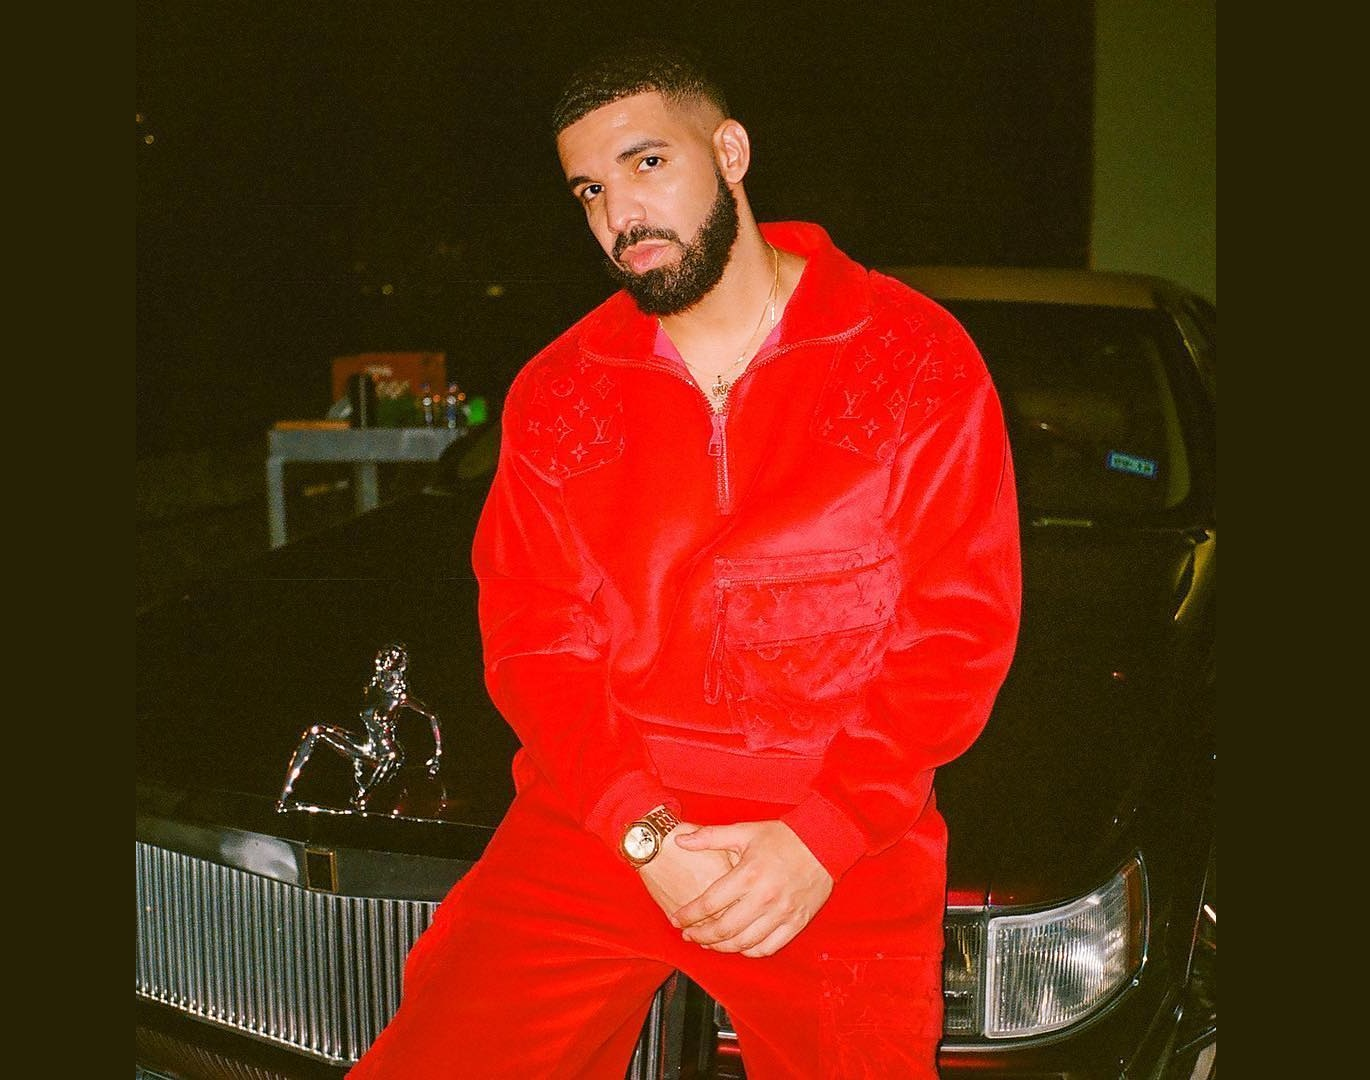 SPOTTED: Drake in Full Louis Vuitton During the Filming of SICKO MODE's Visuals